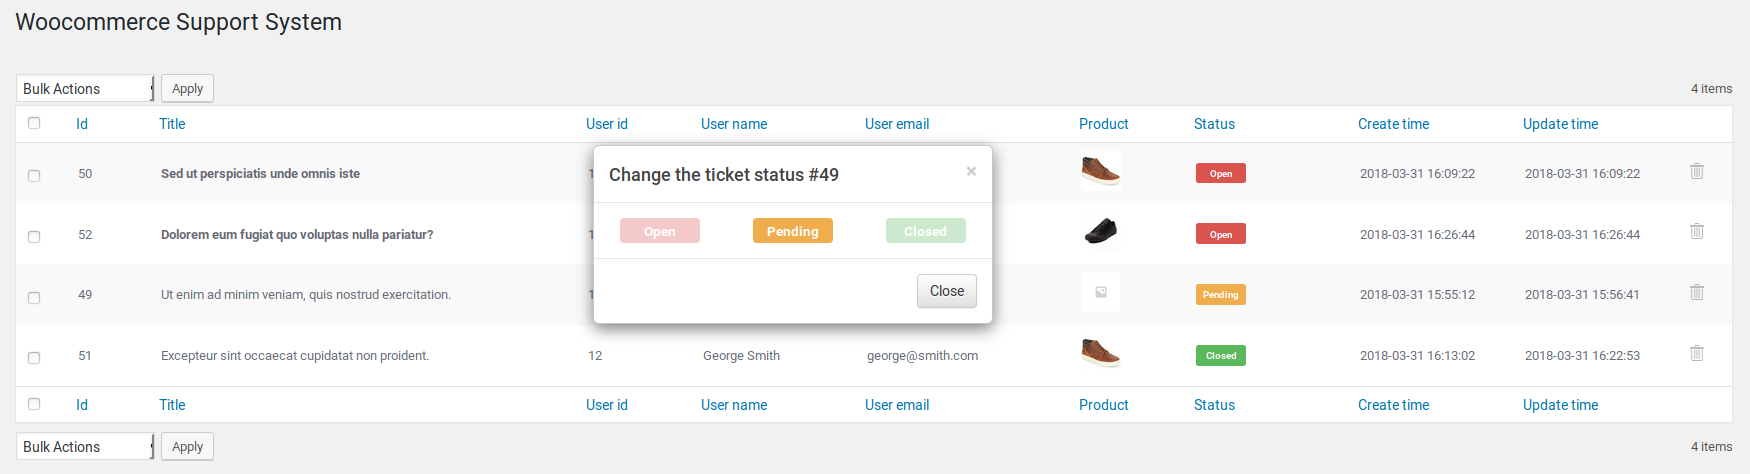 WooCommerce Support System - 4